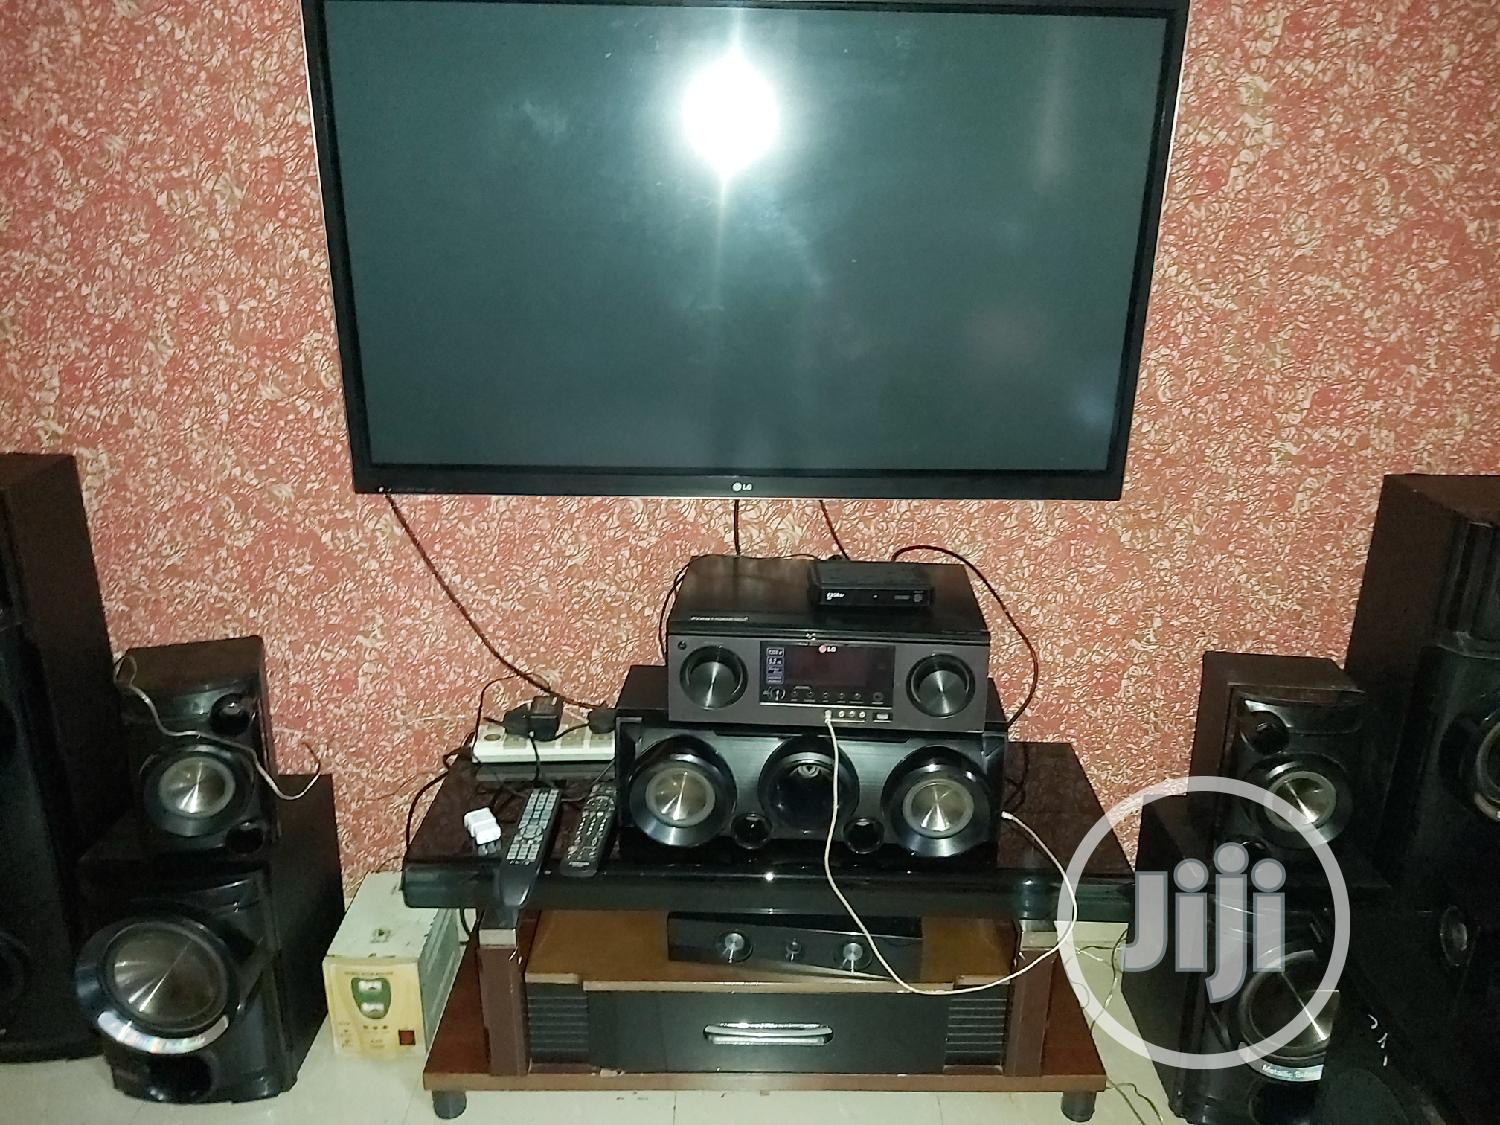 LG 50 Inches Smart Internet Tv | TV & DVD Equipment for sale in Ikorodu, Lagos State, Nigeria